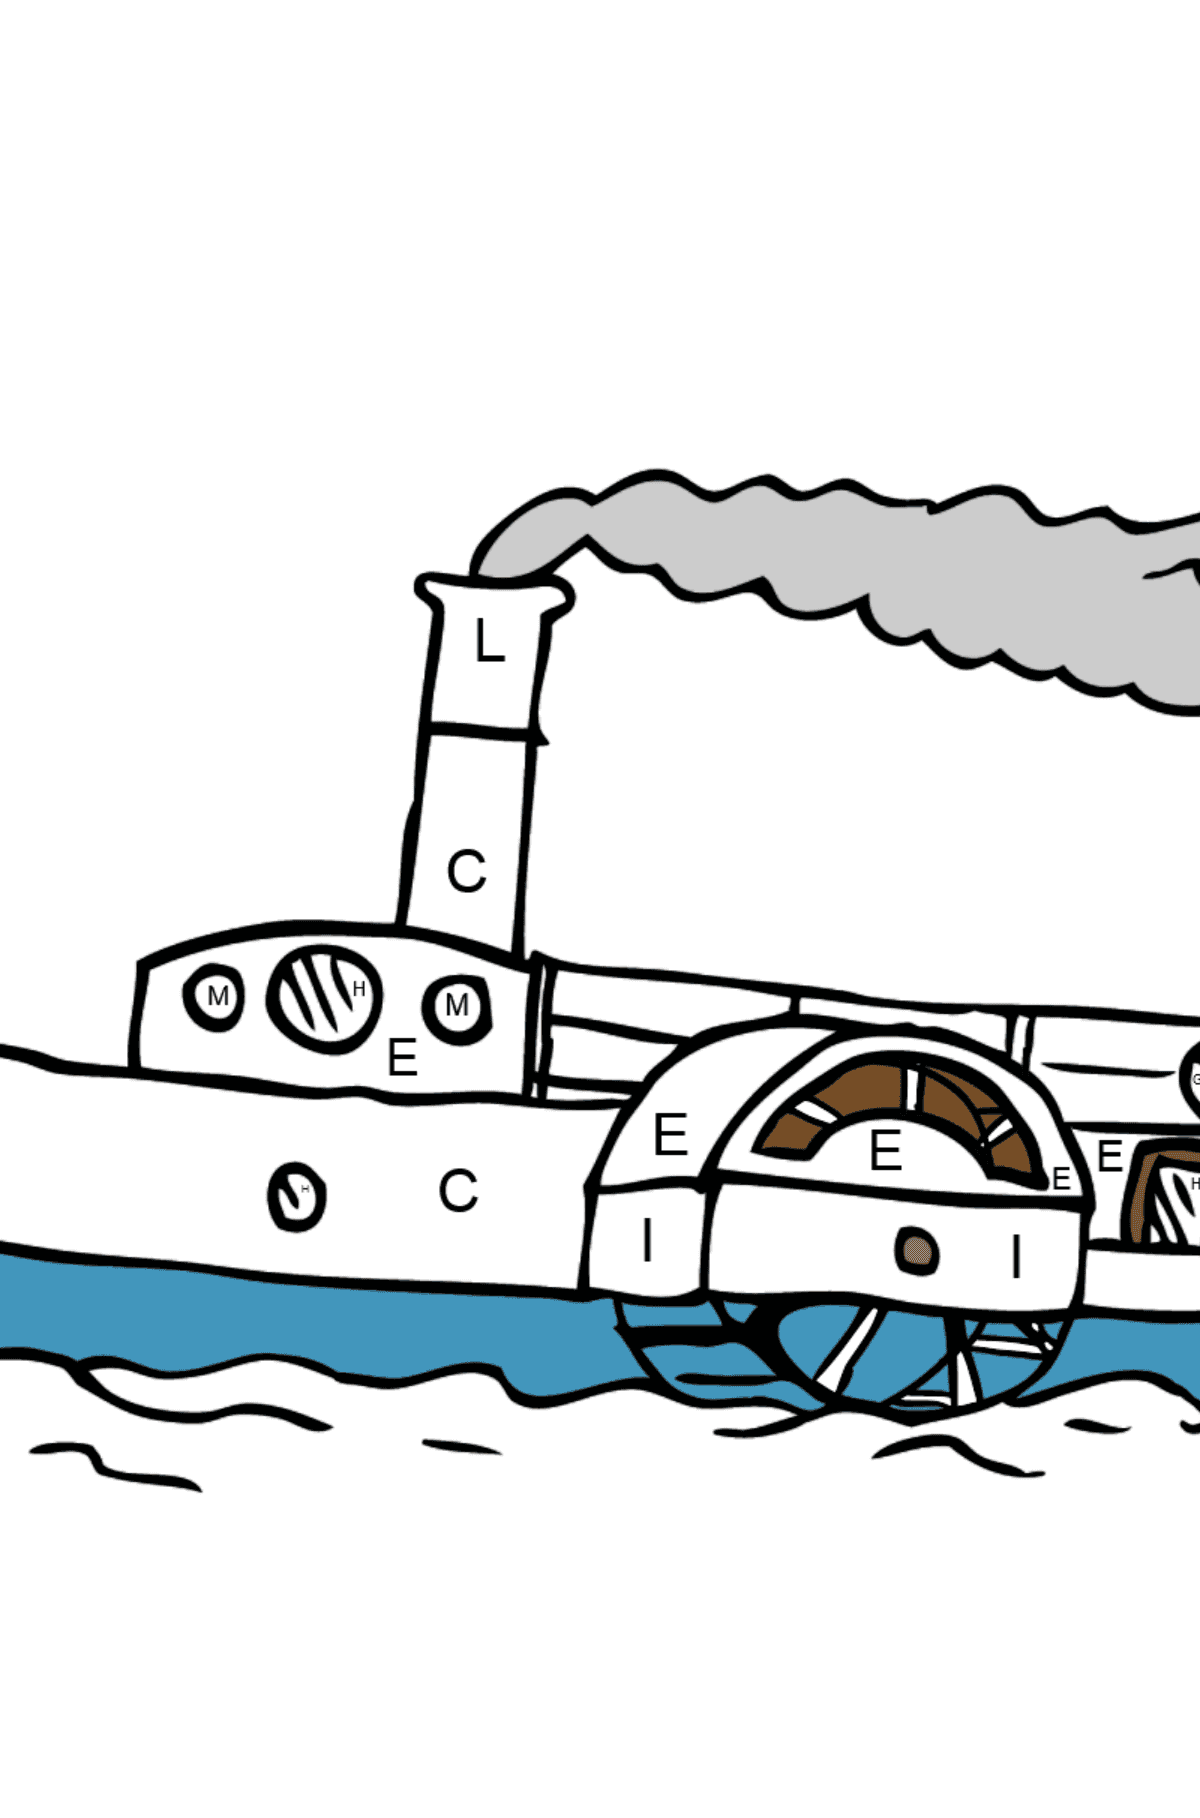 Coloring Page - A Ship with a Paddle Wheel - Coloring by Letters for Kids